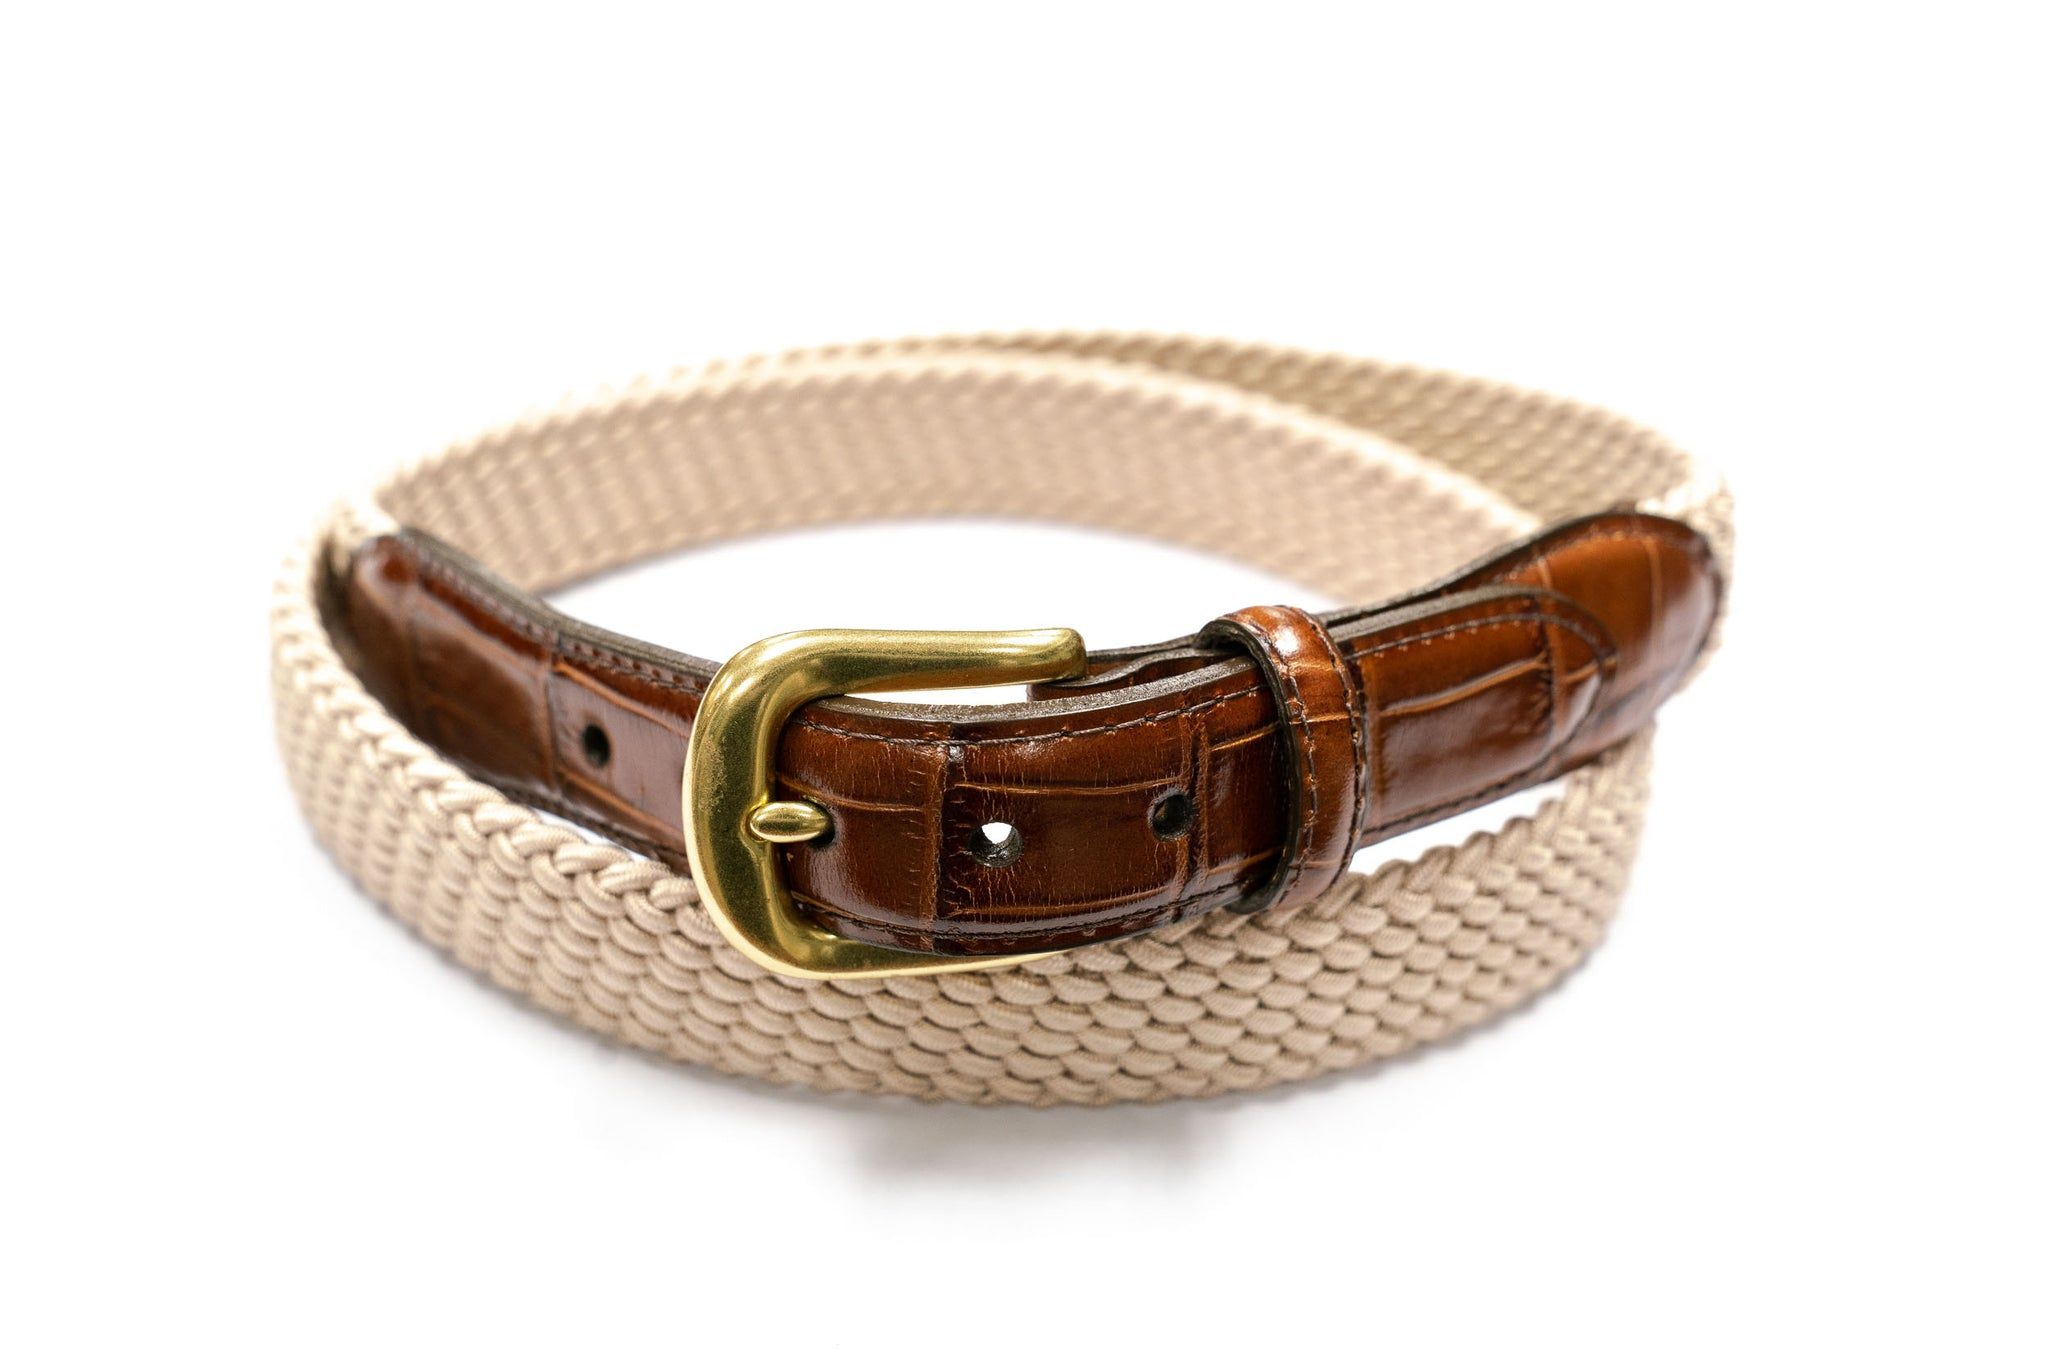 Brighton Braided Stretch Belt with Croco Leather in Beige - Rainwater's